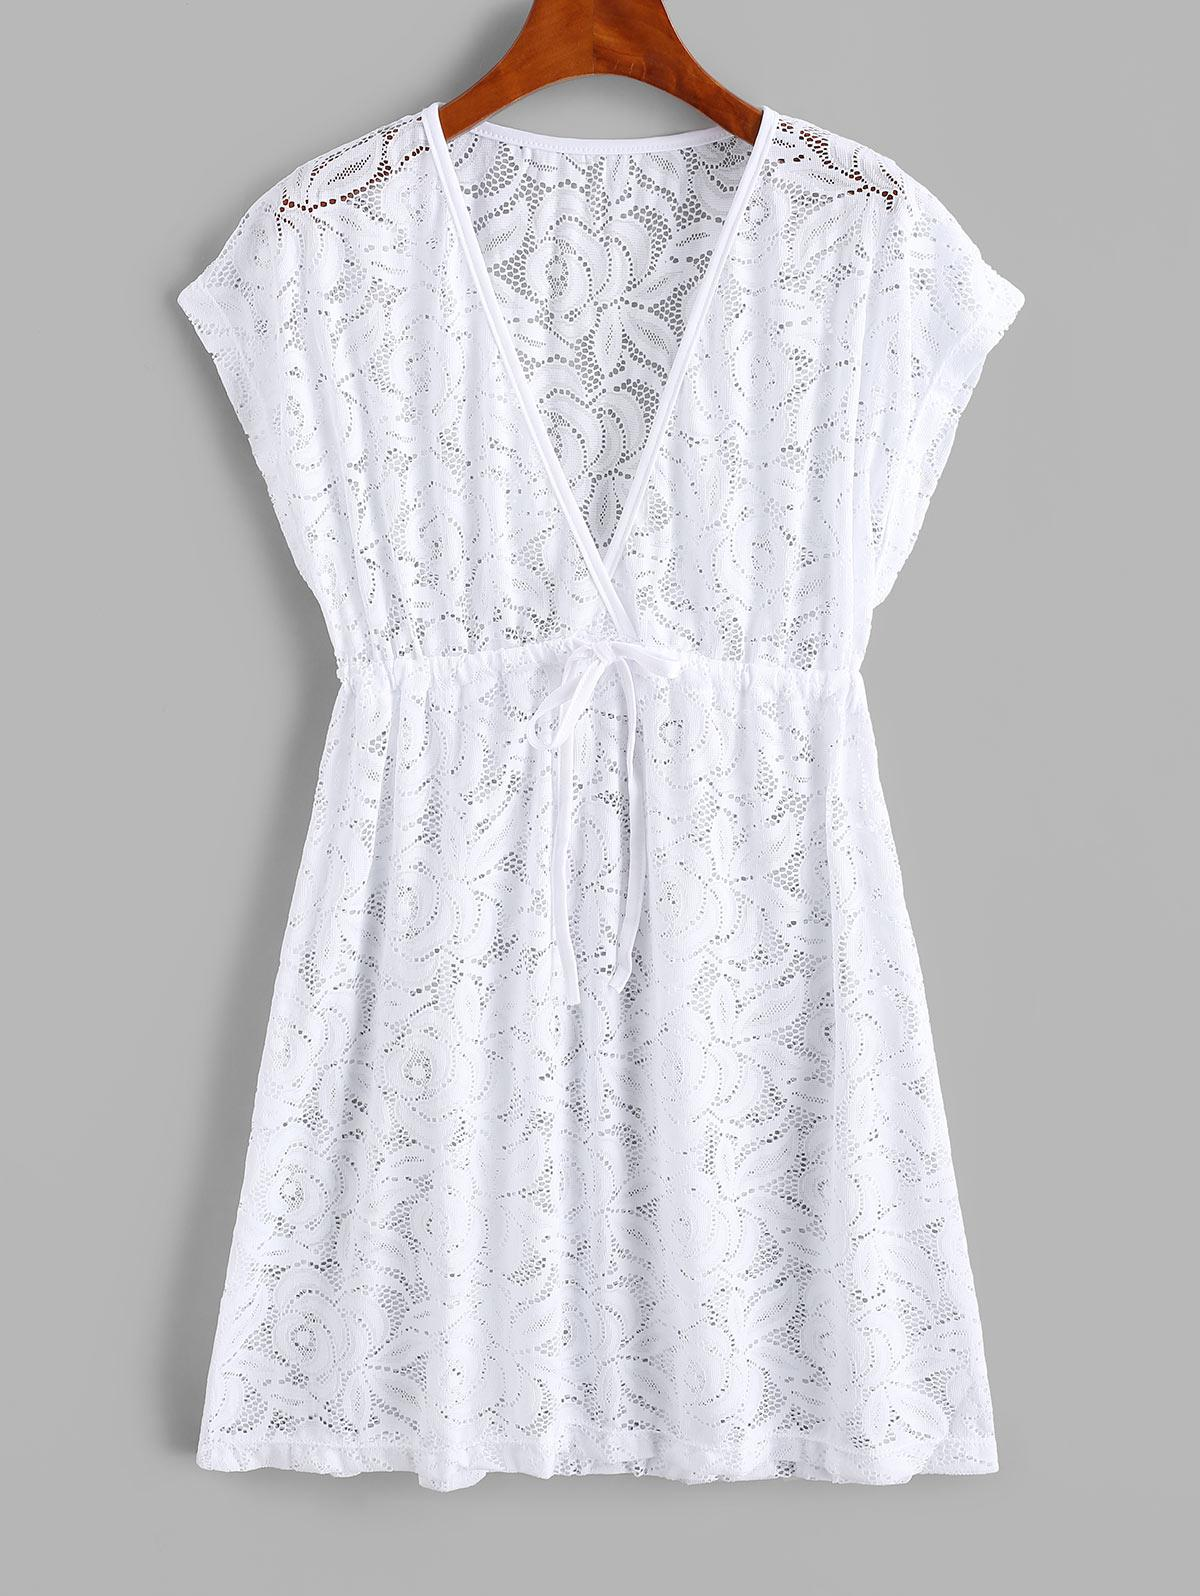 Lace See Thru Surplice Drawstring Cover Up Dress